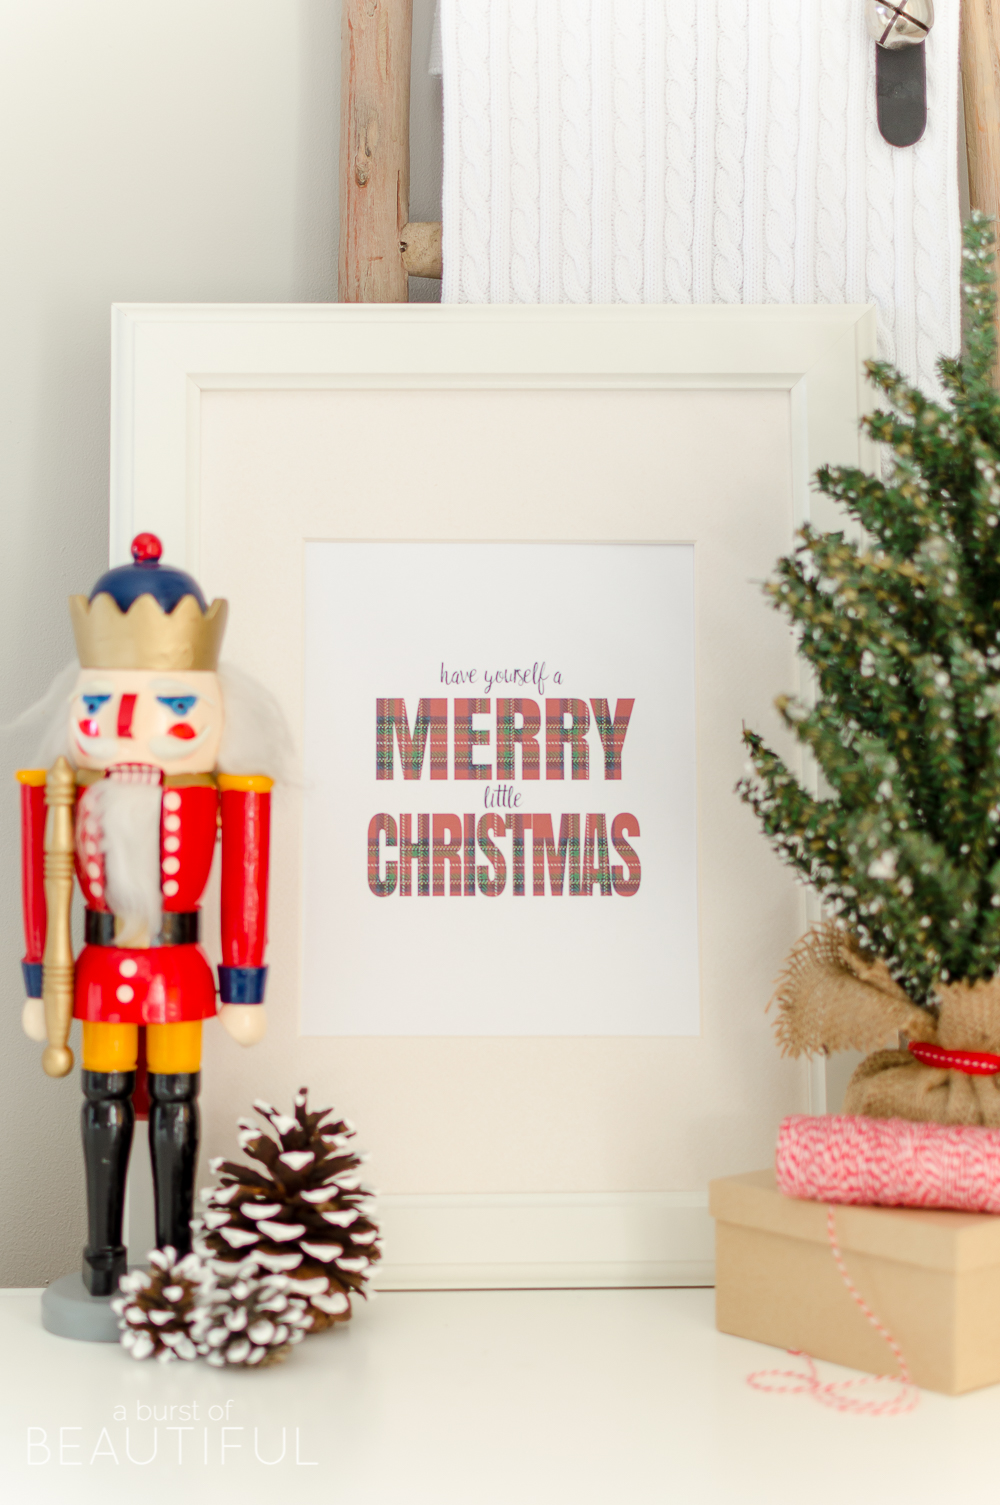 have-yourself-a-merry-little-christmas-printable-7326